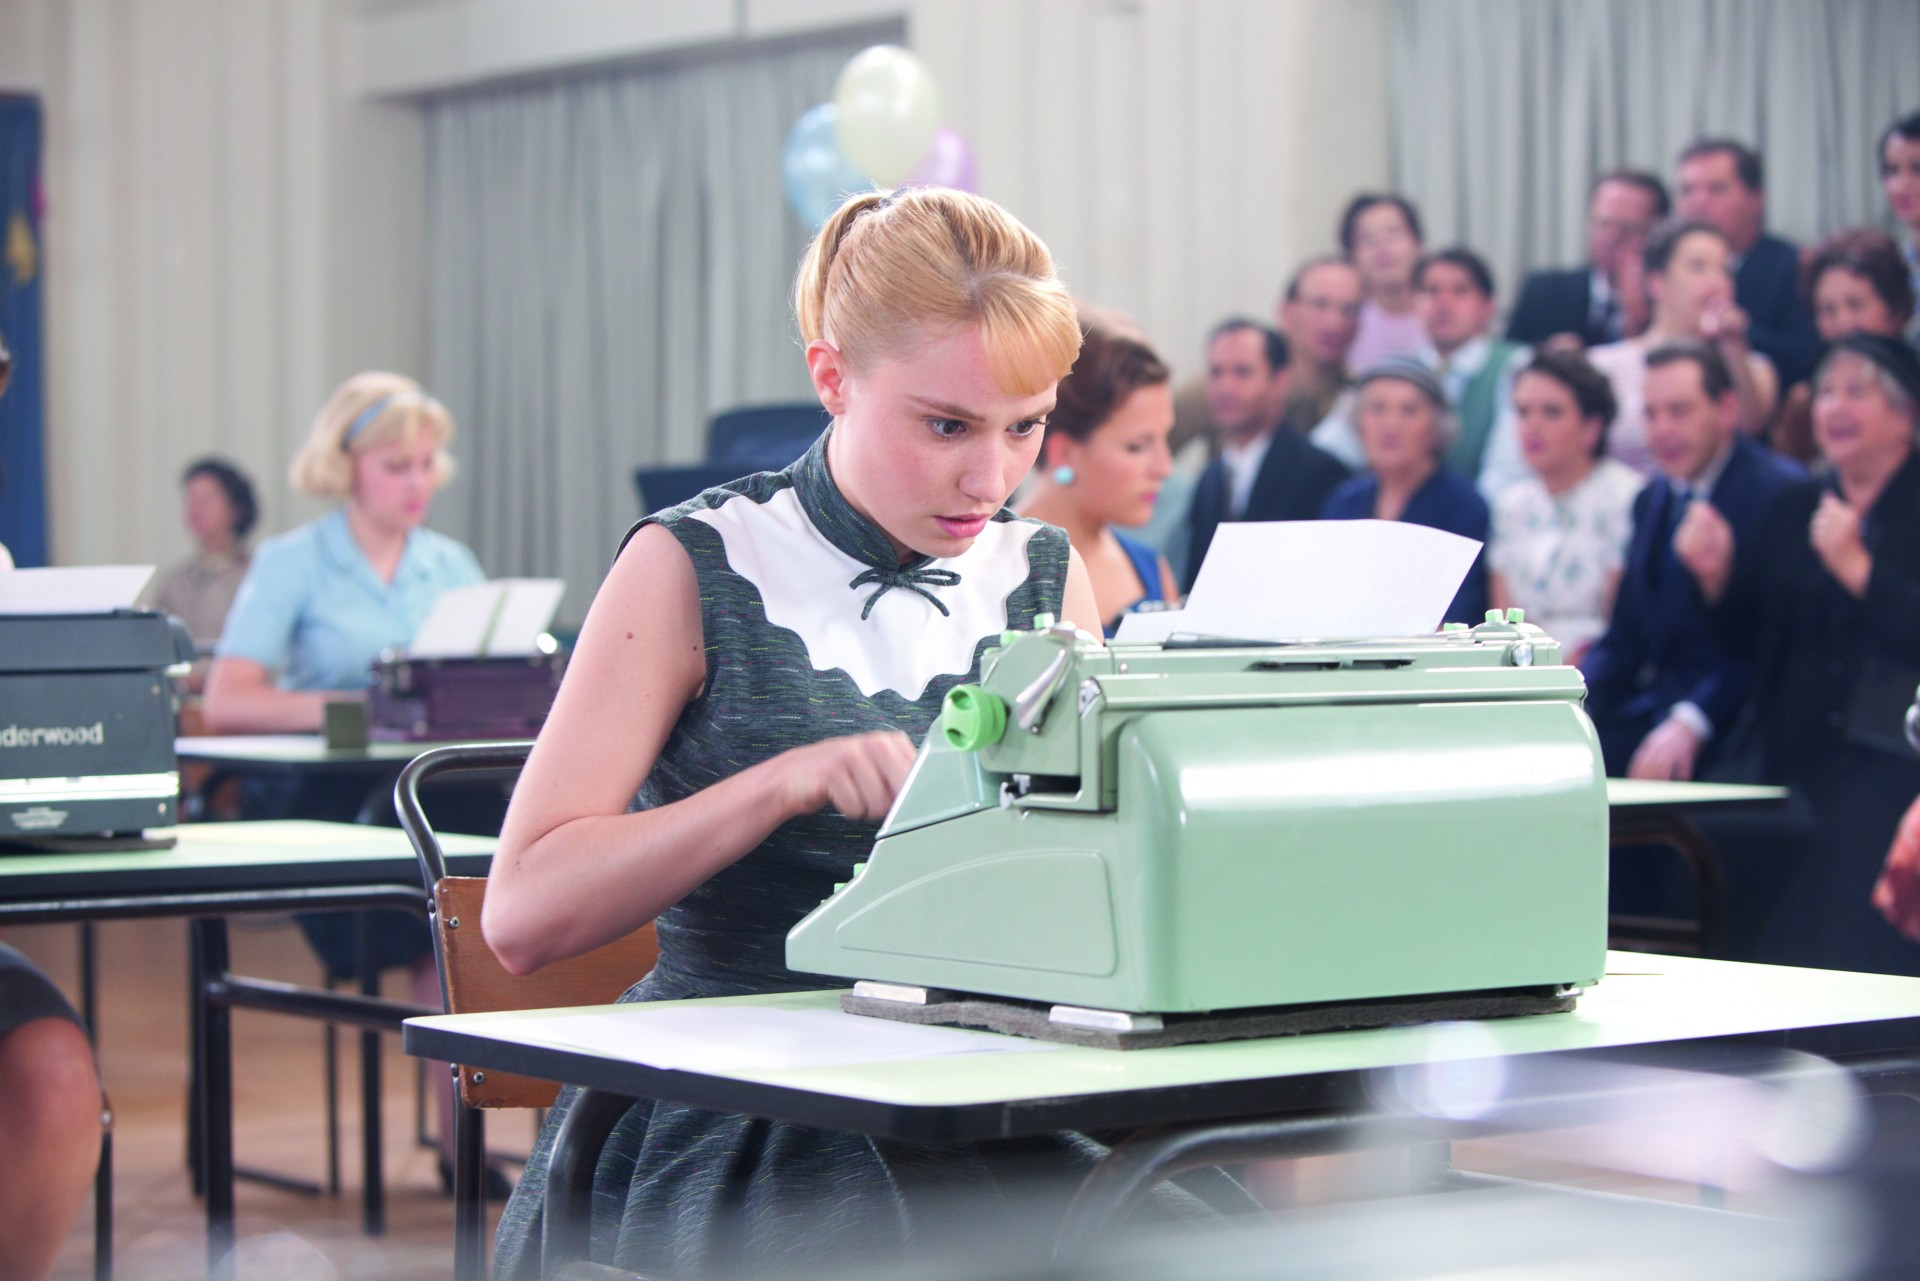 Populaire:  There's a lot of these shots in the film, so brace yourselves.